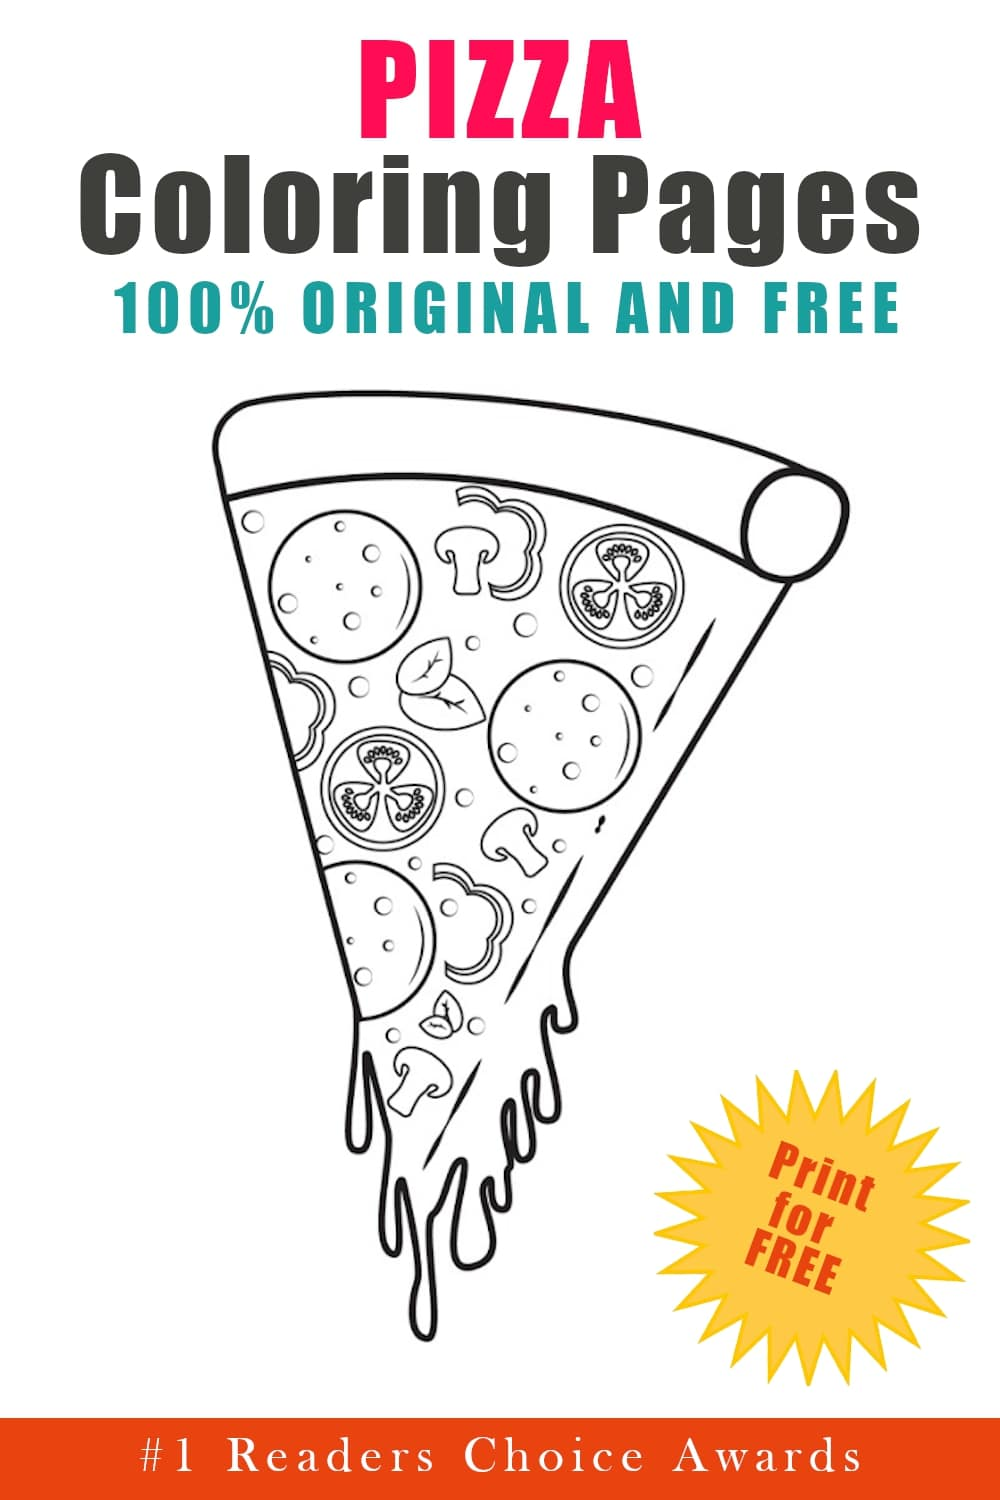 original and free pizza coloring pages